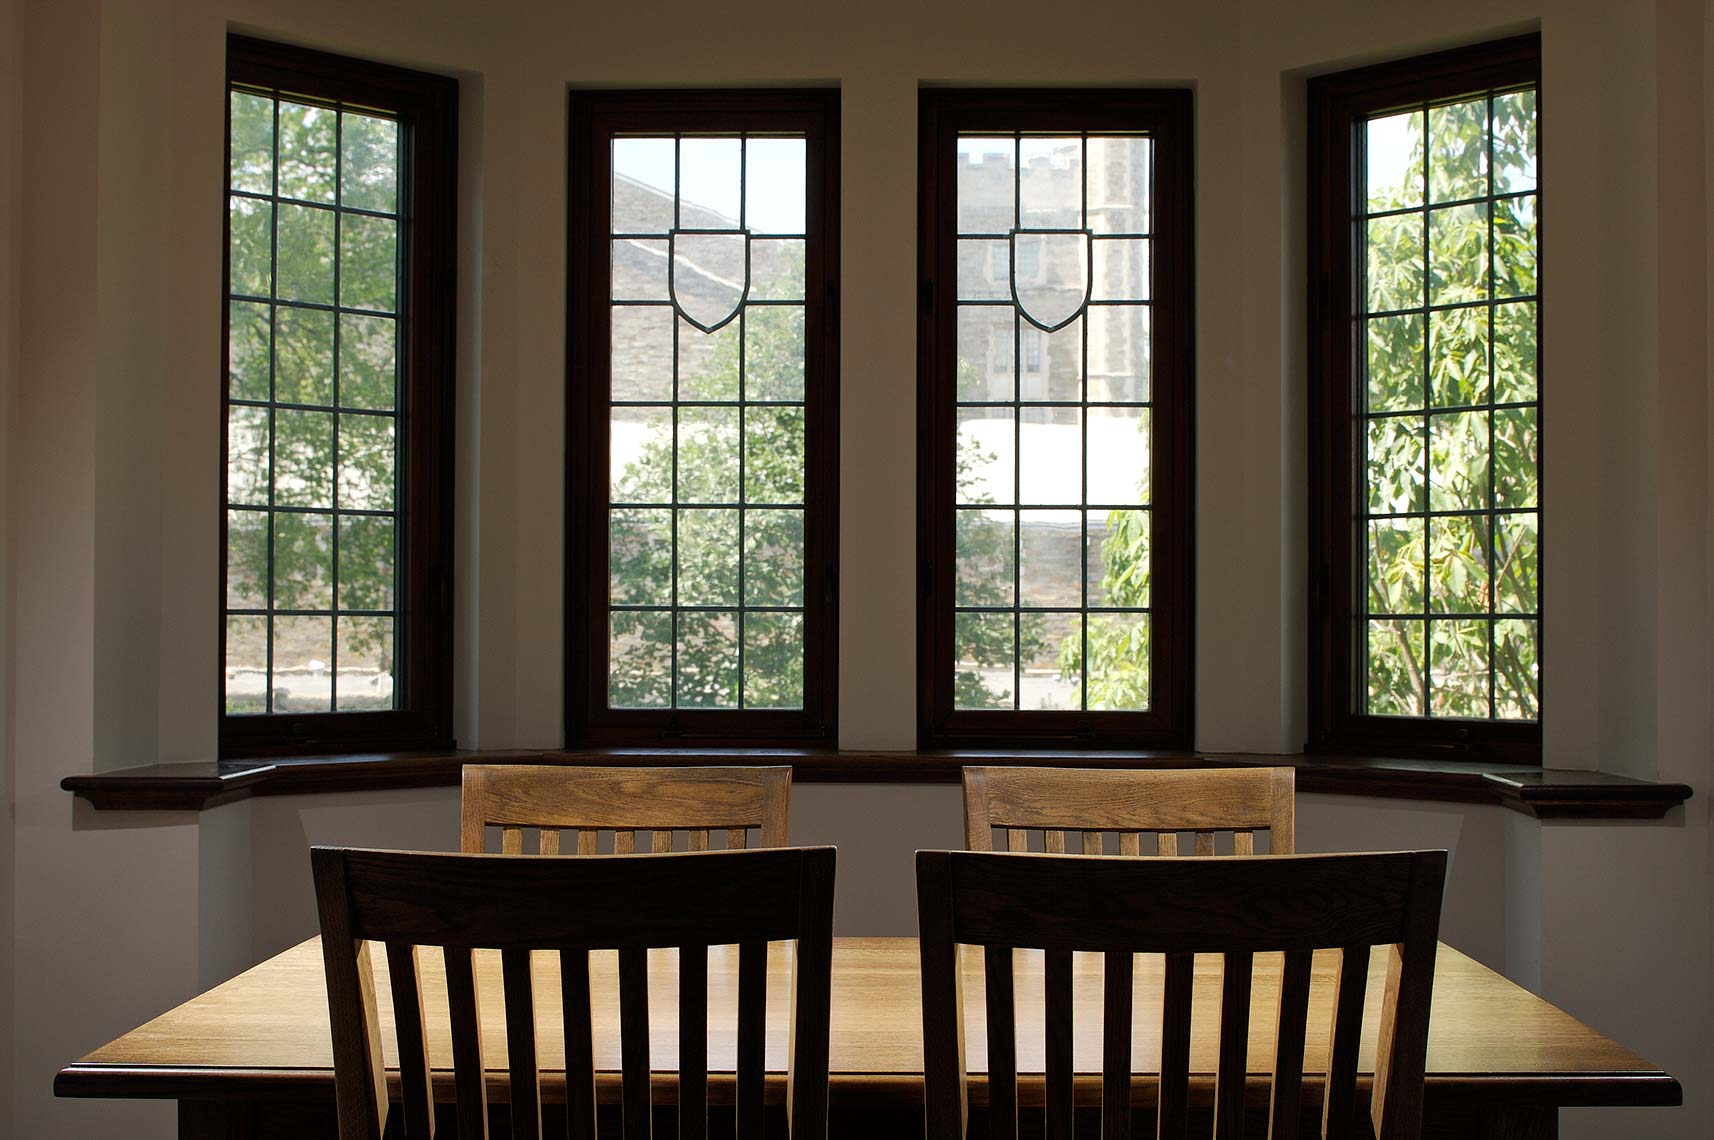 Whitman College, Princeton University - Window Bay with Study Space